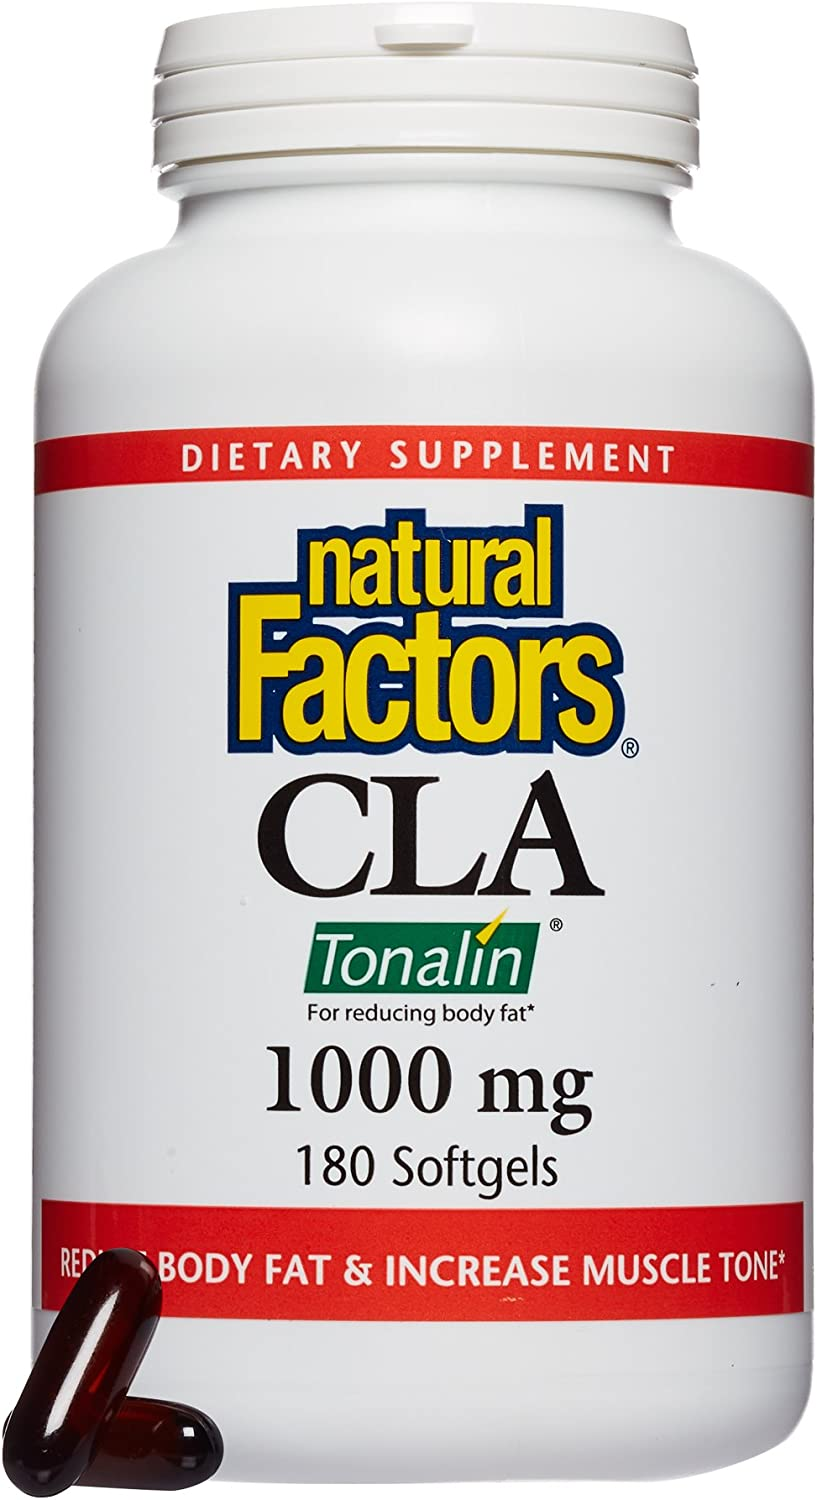 Natural Factors, CLA Tonalin 1000 mg, Supports Healthy Muscle Mass and Weight Management, 180 softgels 90 servings